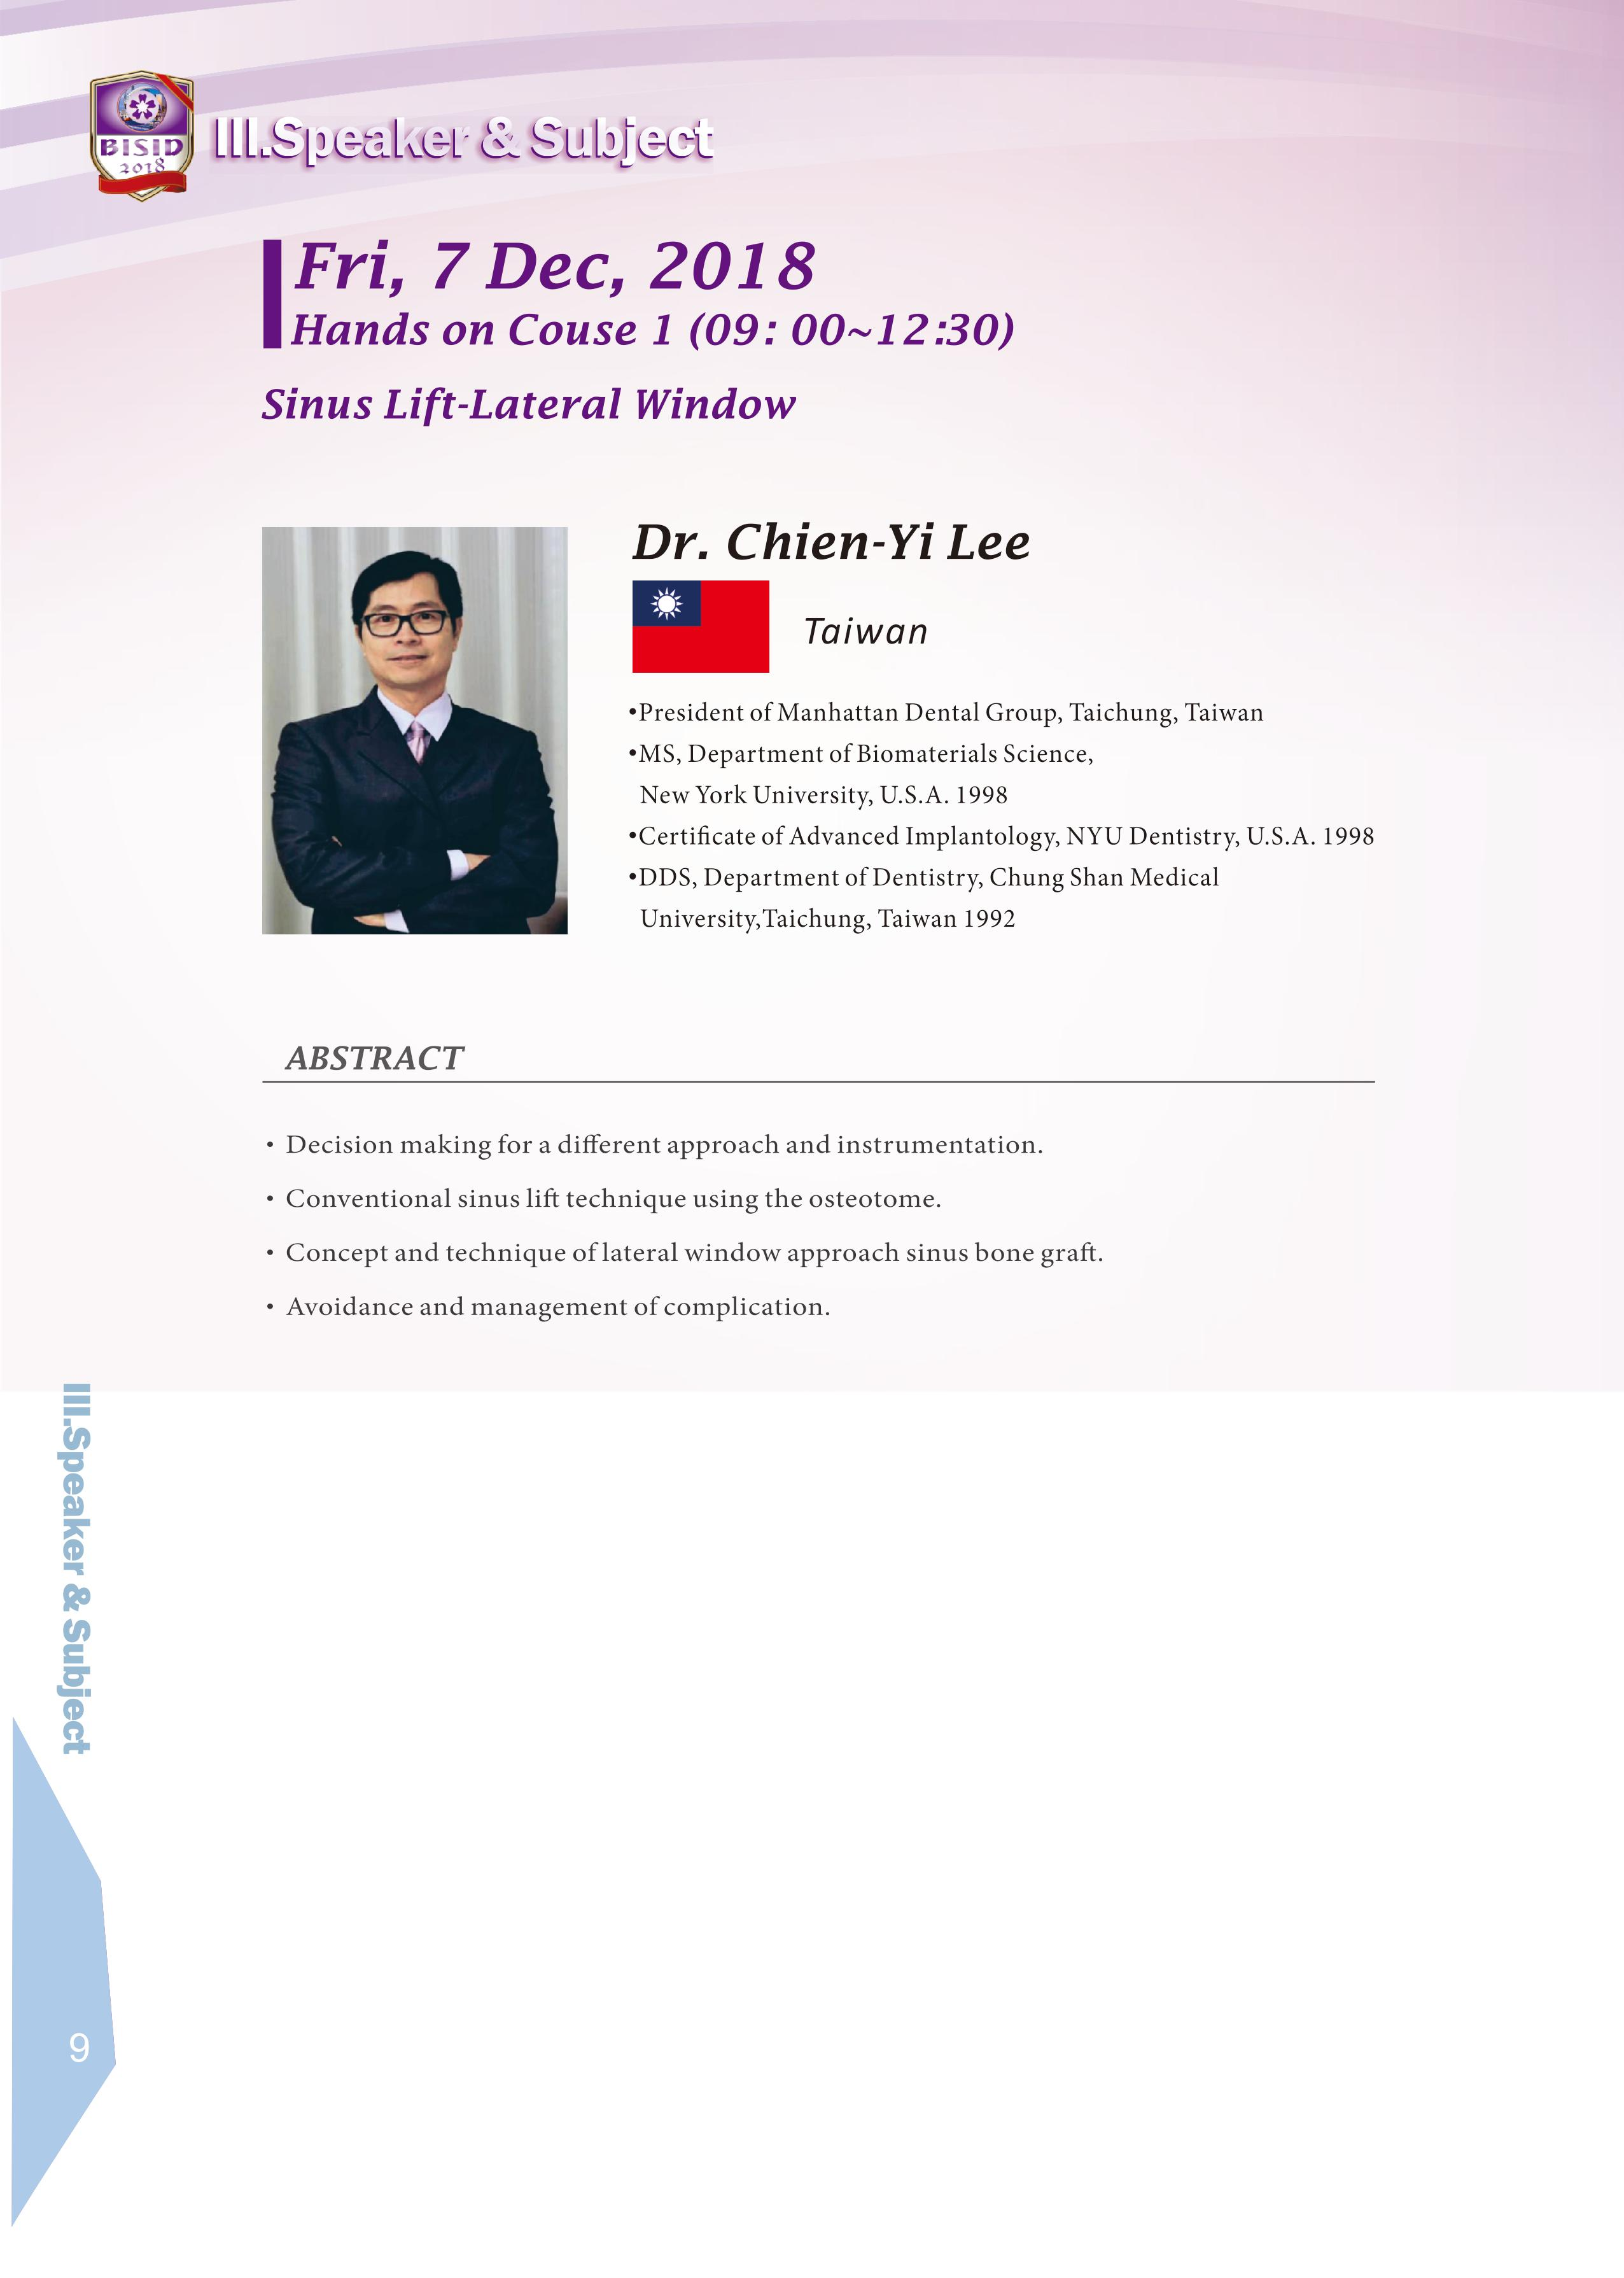 Biomate Internation Symposium of Implant Dentistry-Dr.Chien-Yi Lee